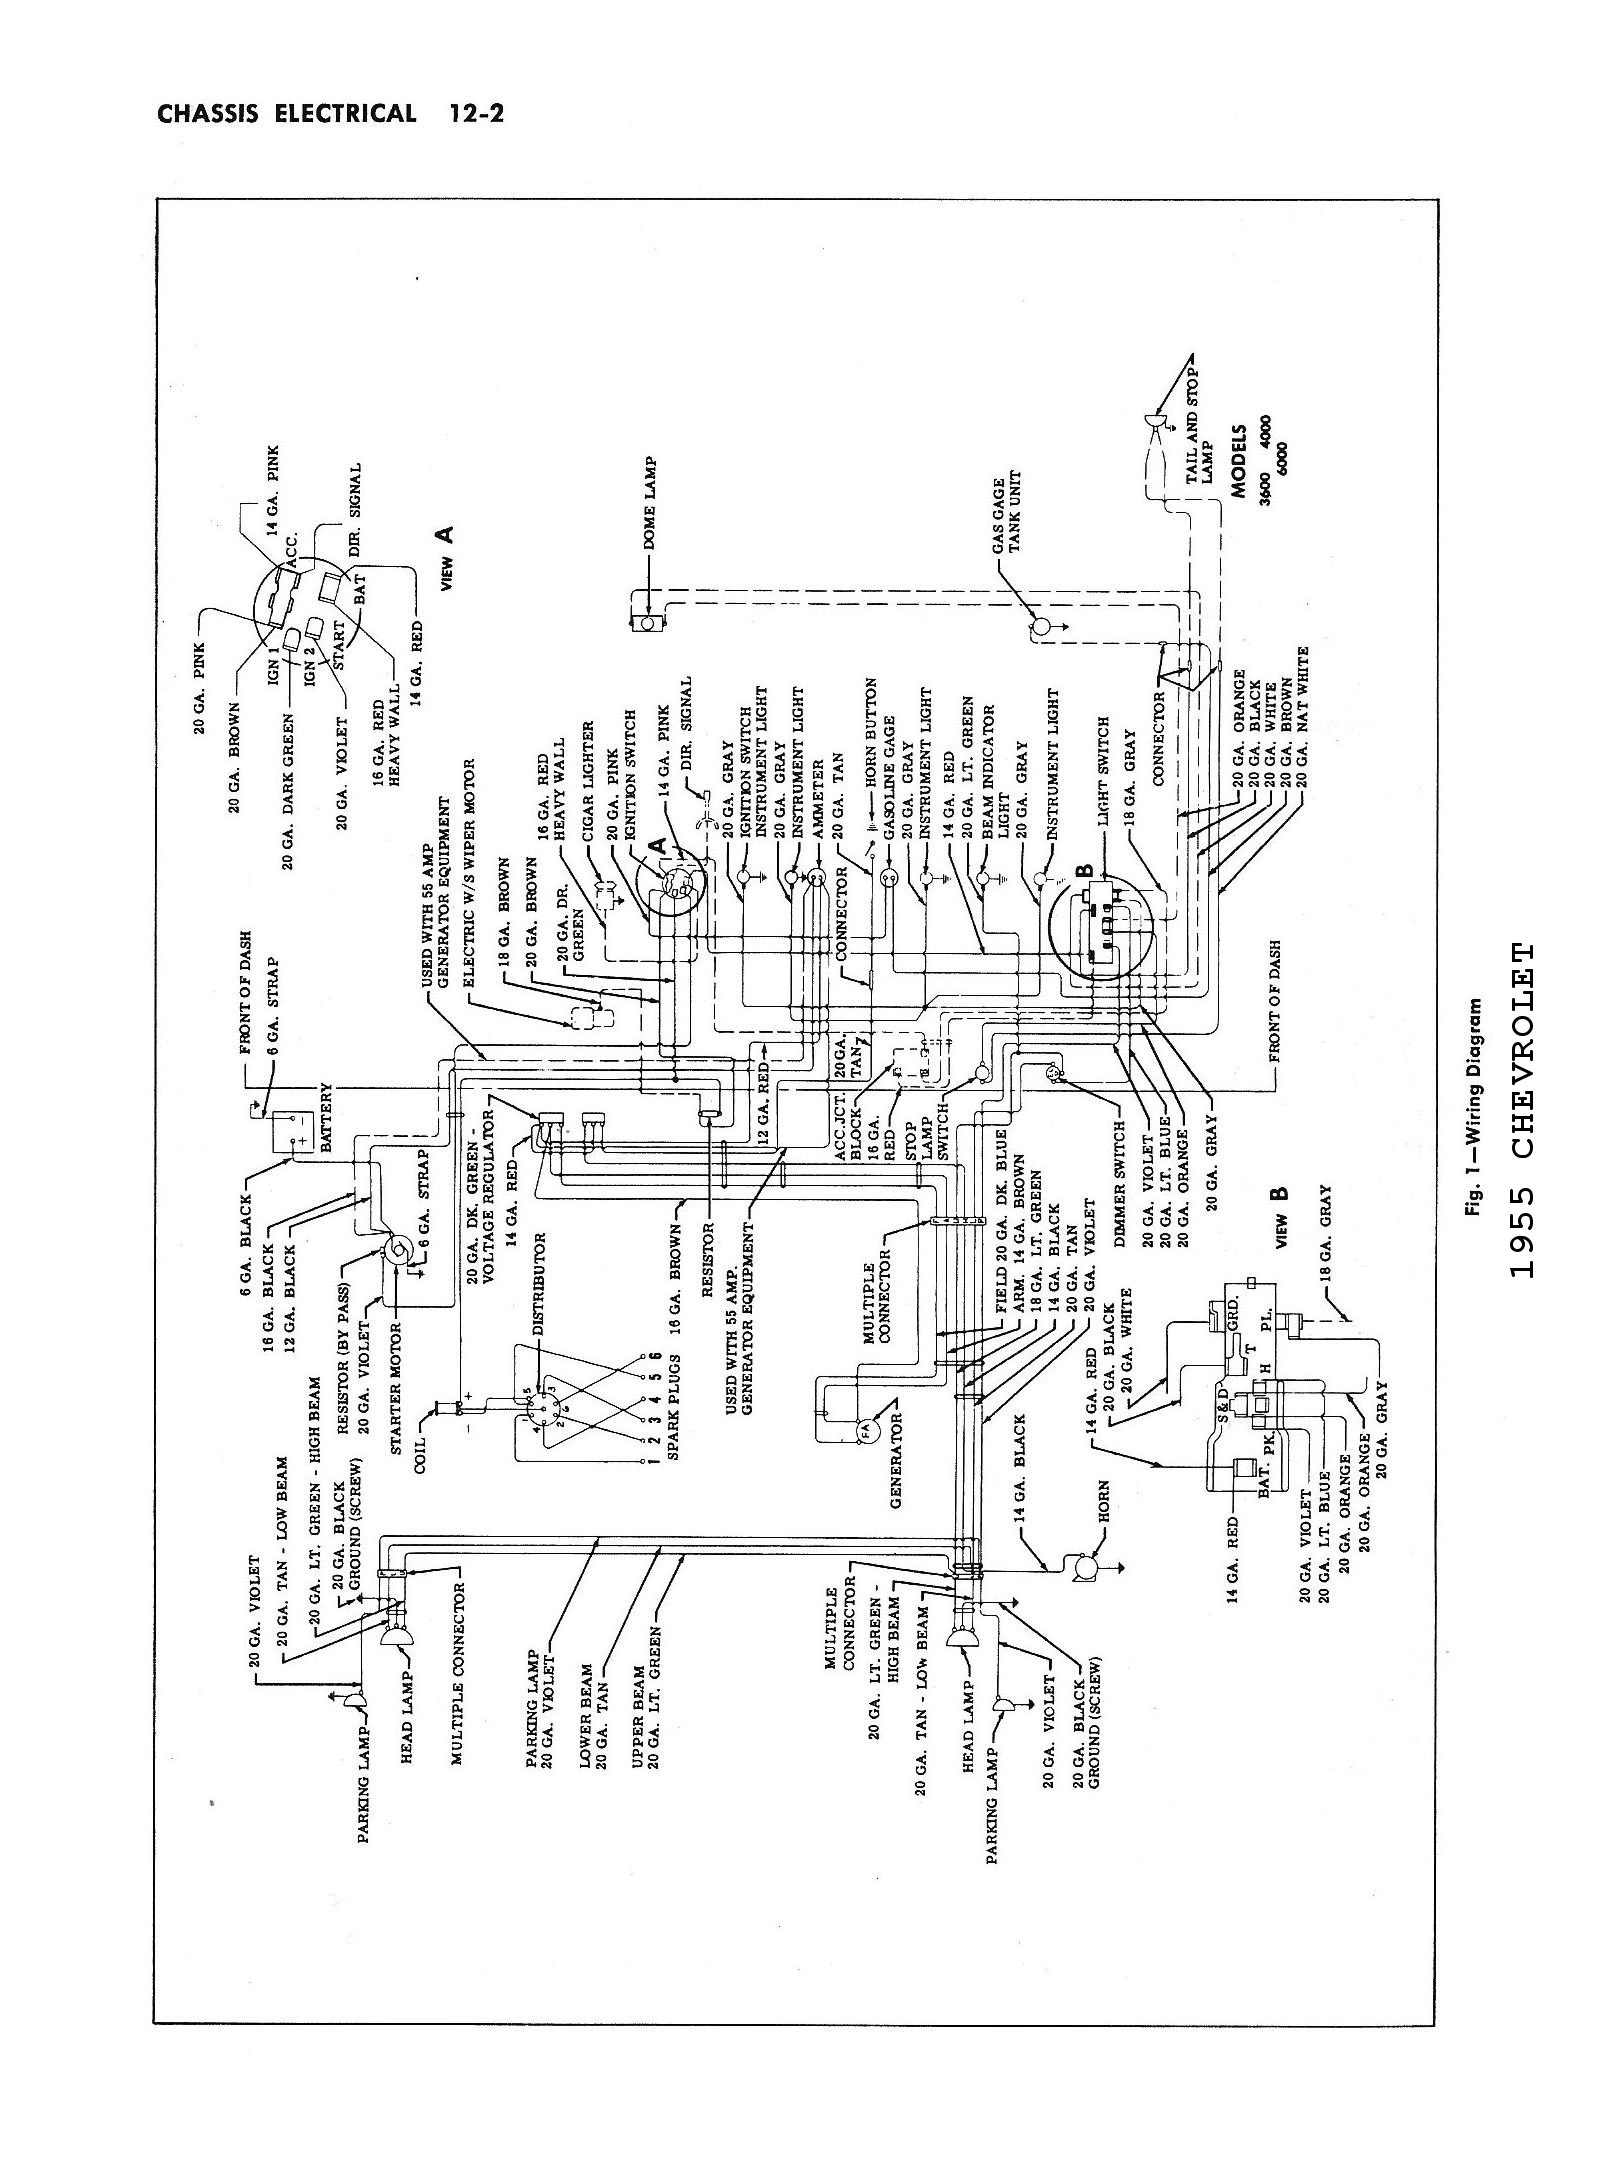 Chevy Malibu Turn Signal Wiring Diagram Free Picture Reveolution 1951 Ford Truck 58 Schematic Rh Theodocle Fion Com Relay